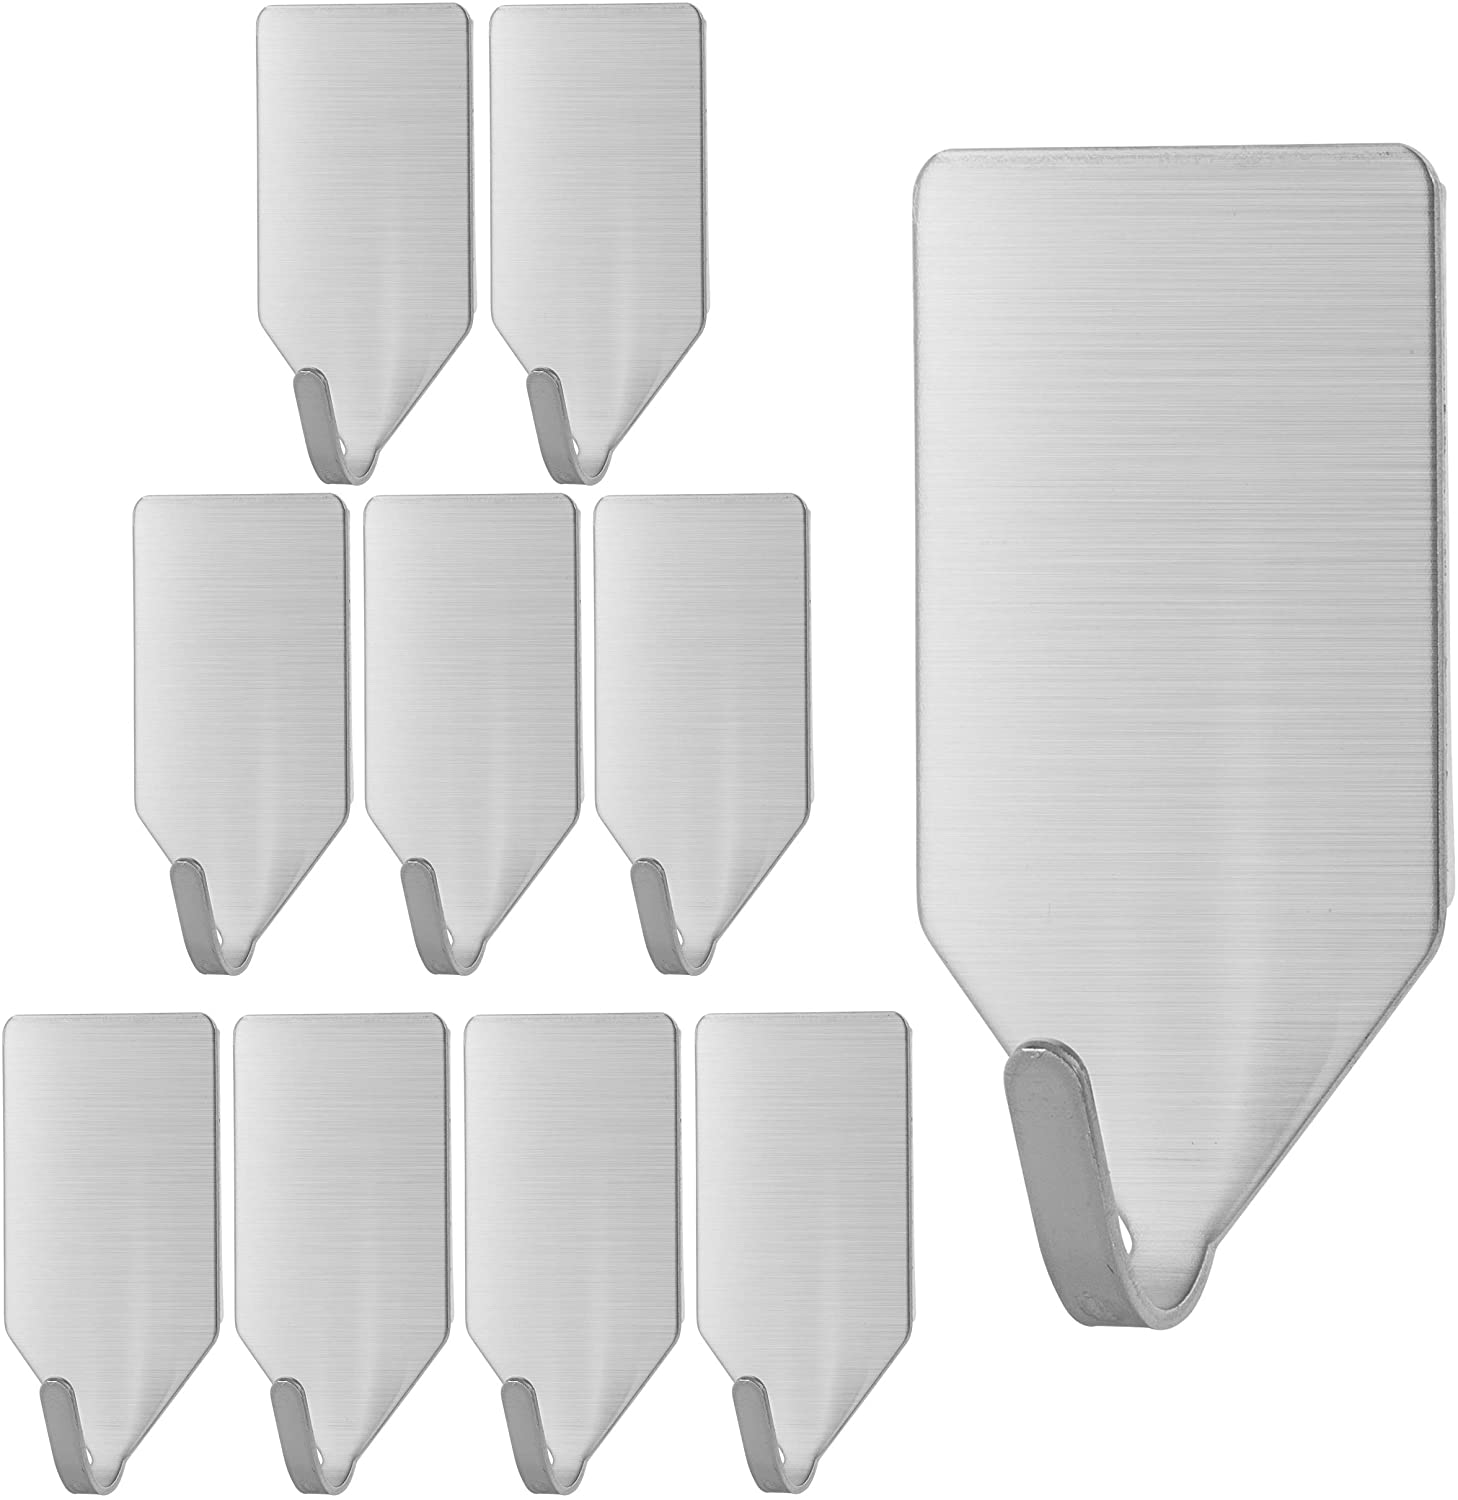 2. UNCO- Small Adhesive Hooks, 10 Pack, Stainless Steel, Hooks